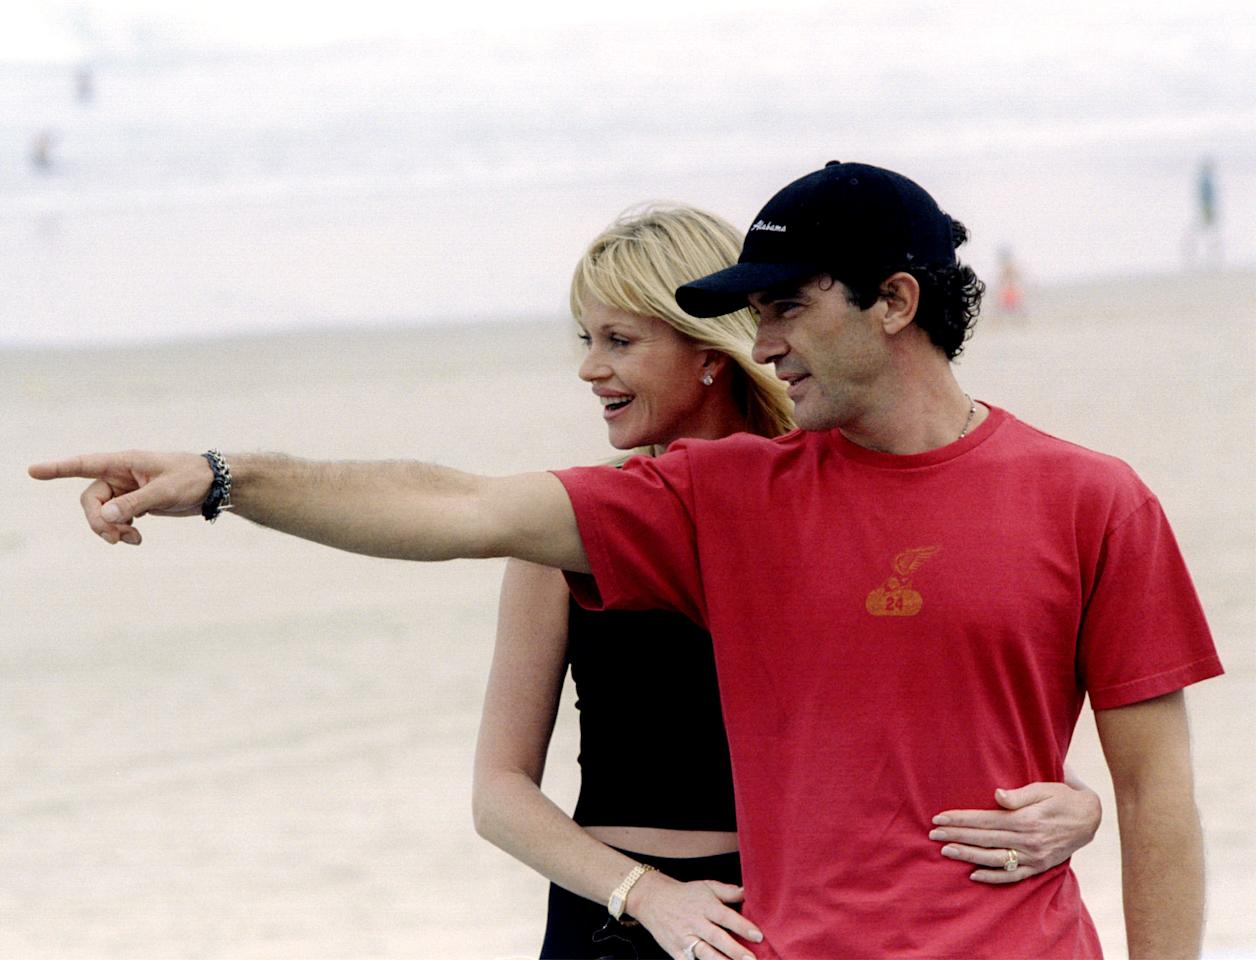 """Spain's international actor Antonio Banderas (R) makes a point to his American wife Melanie Griffith as they pose for photographers at San Sebastian's Zurriola beach September 17, 1999. Banderas'first film """"Crazy in Alabama"""" will compete in San Sebastian's International Film Festival.  REUTERS/Pablo Sanchez"""